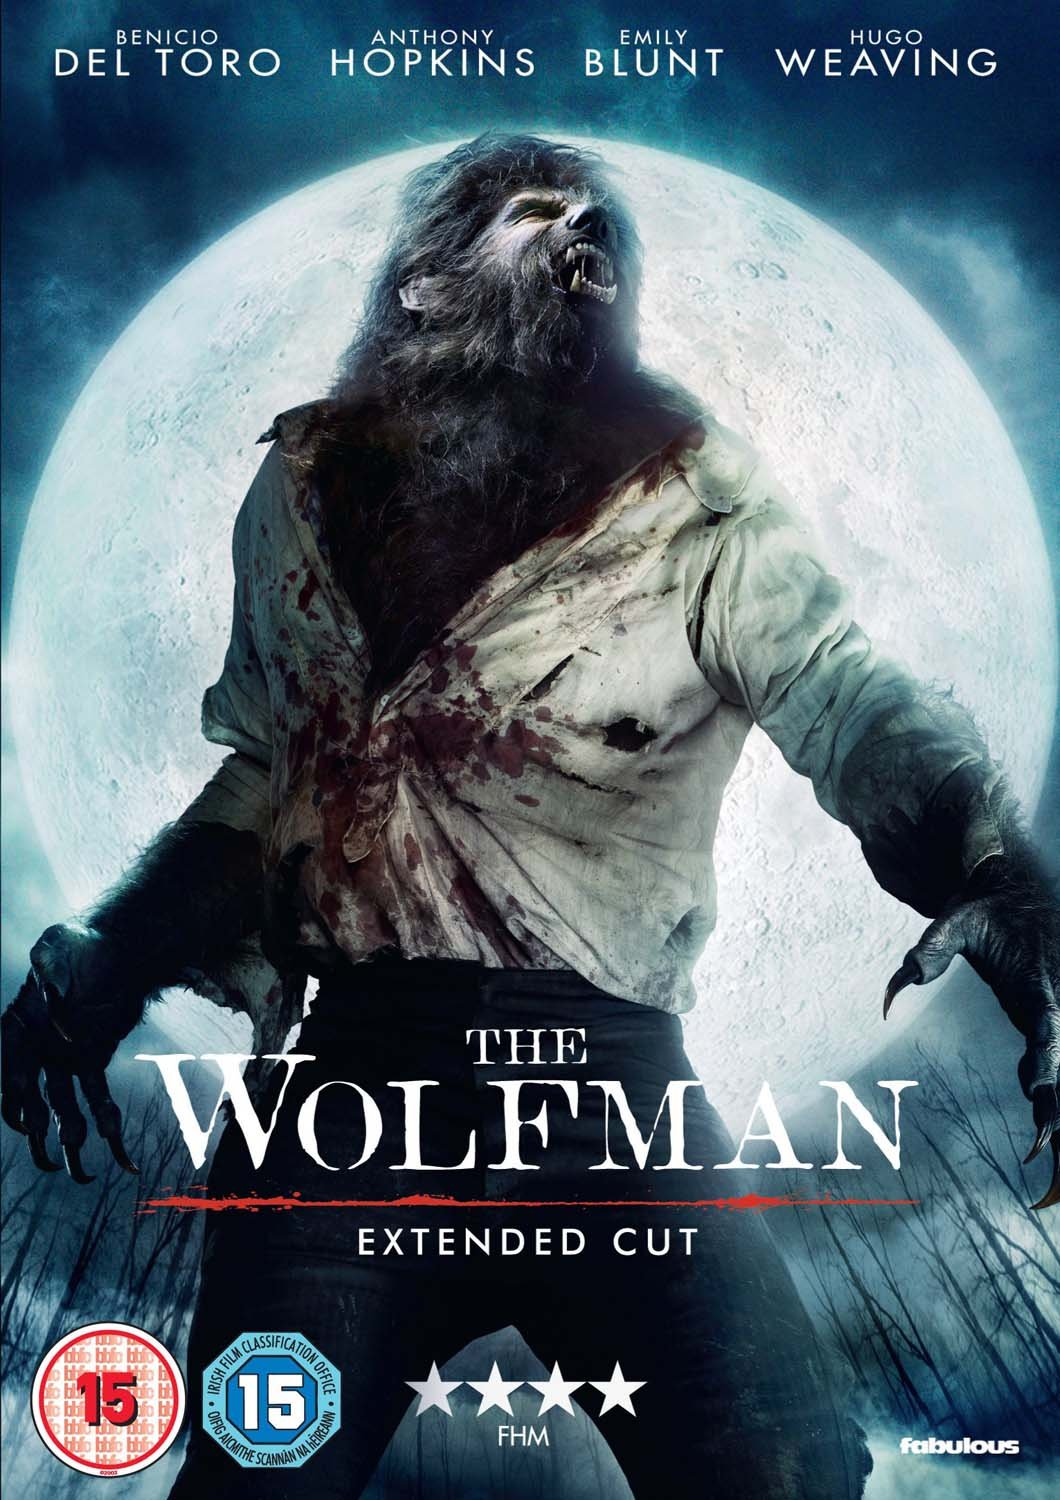 Film Review: THE WOLFMAN (2010)